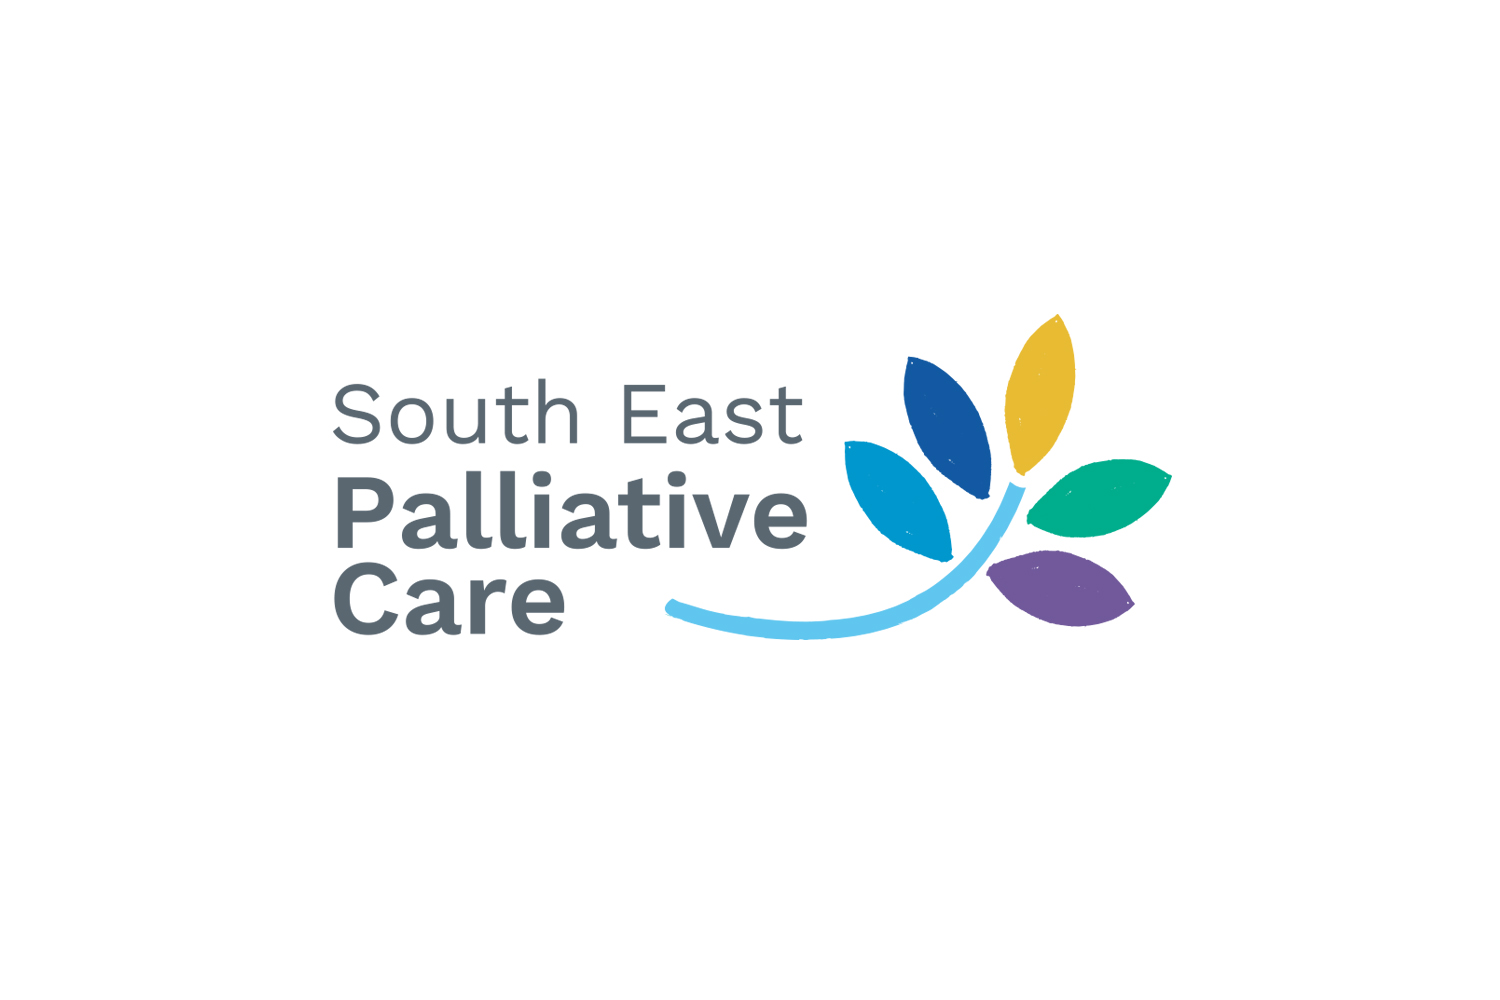 Cover image: South East Palliative Care